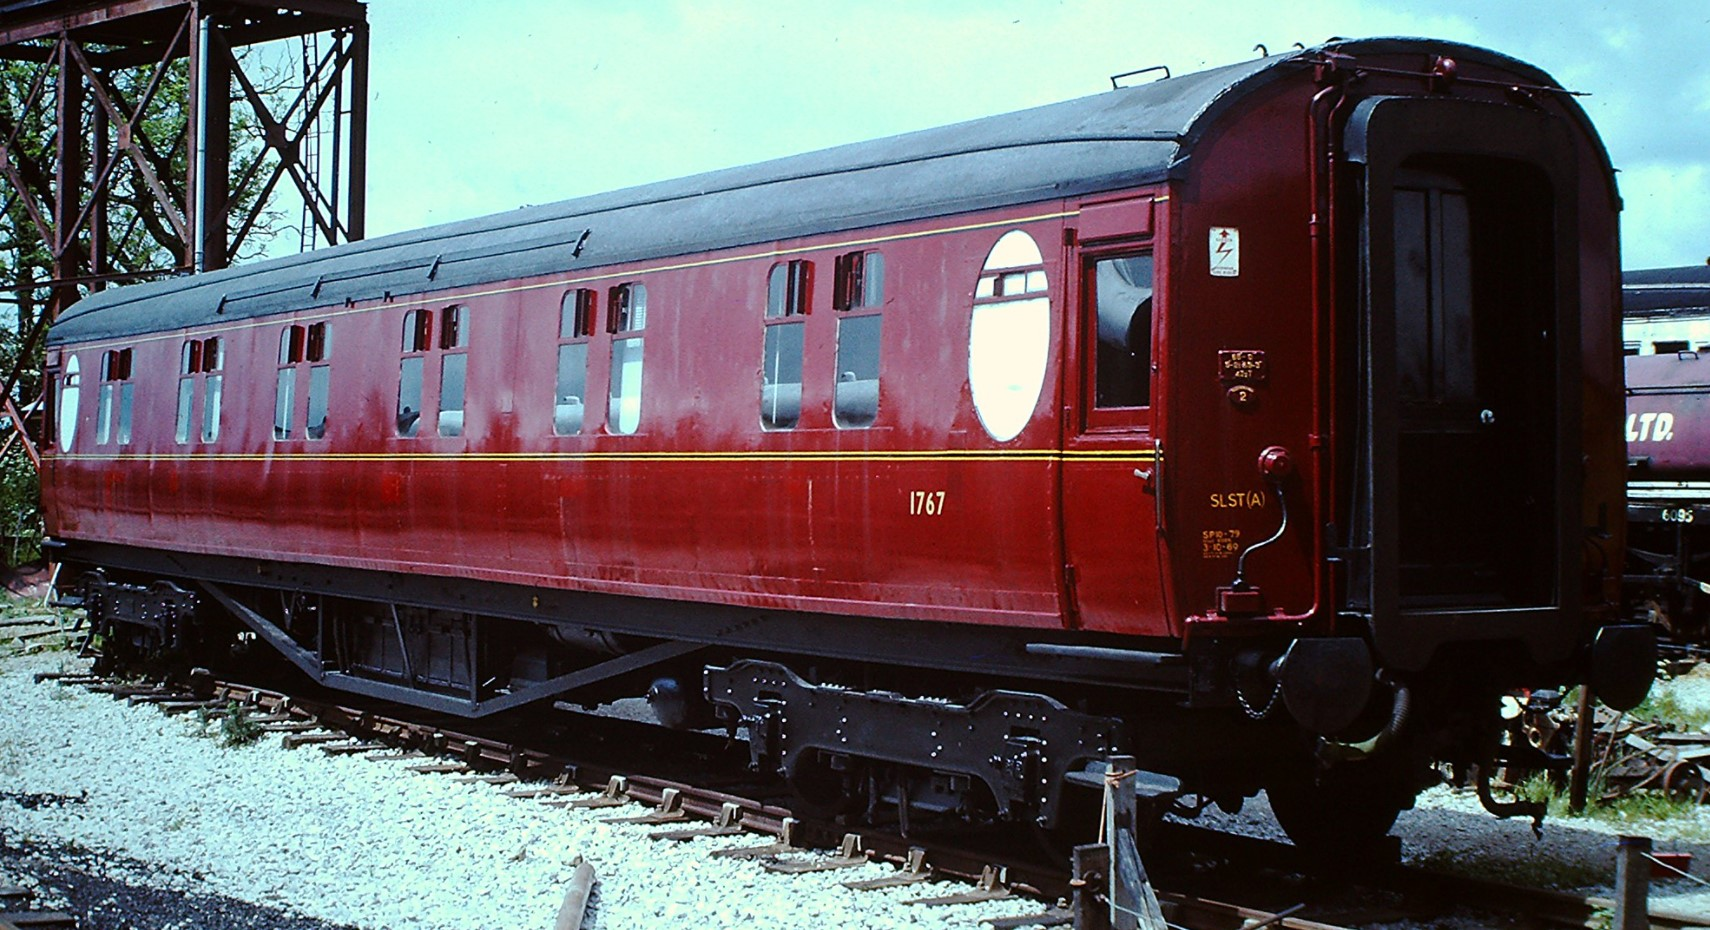 1767 at Cranmore on the East Somerset Railway in July 1977. ©Hugh Llewelyn